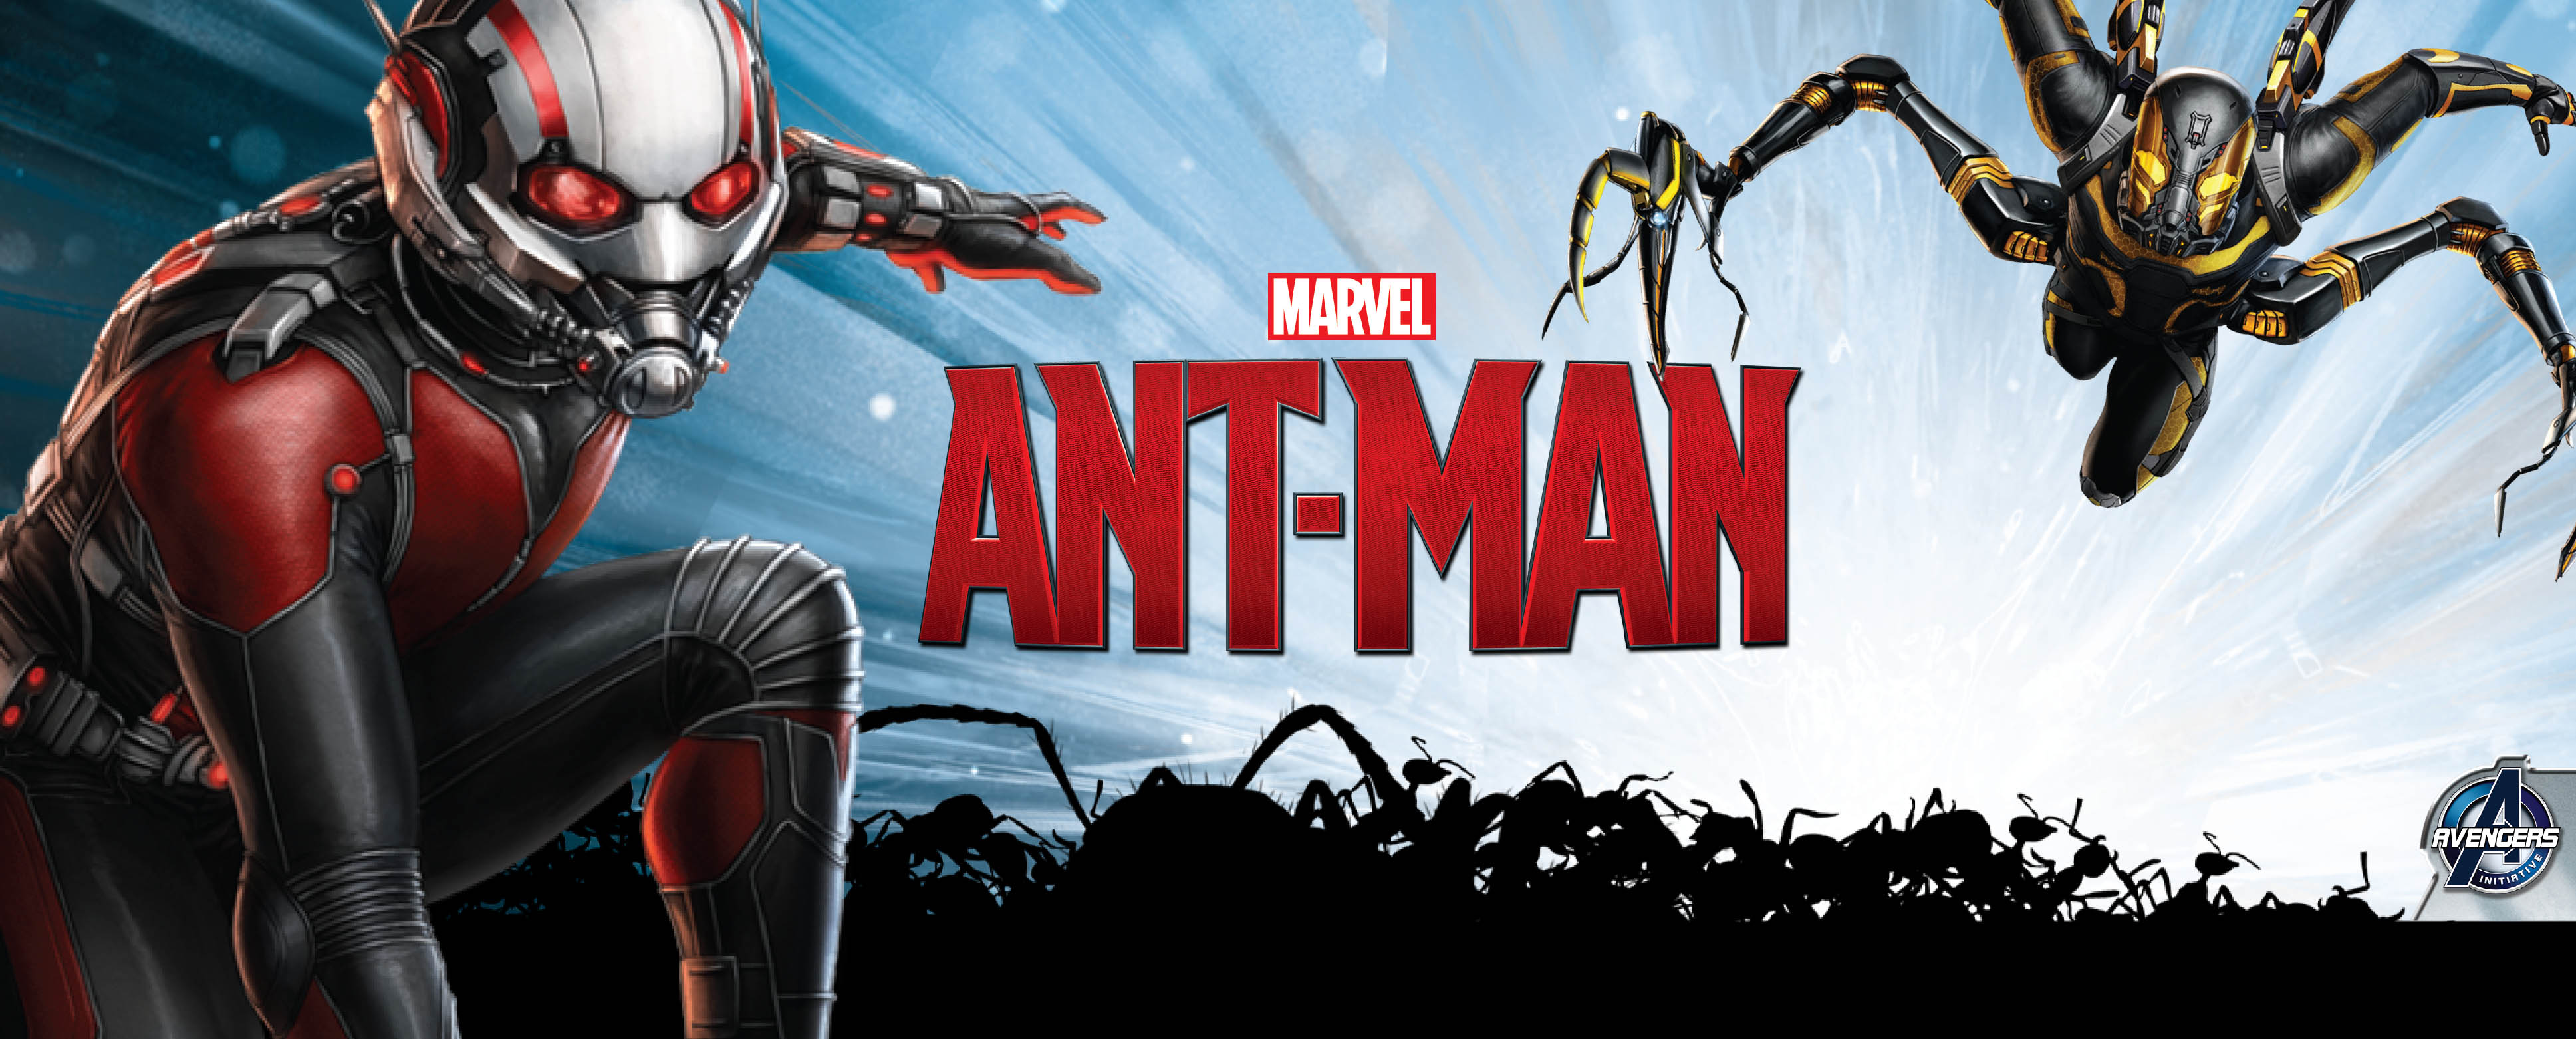 Movie Night with  MARVEL'S ANT-MAN  Release on DVD Date: December 8, 2015